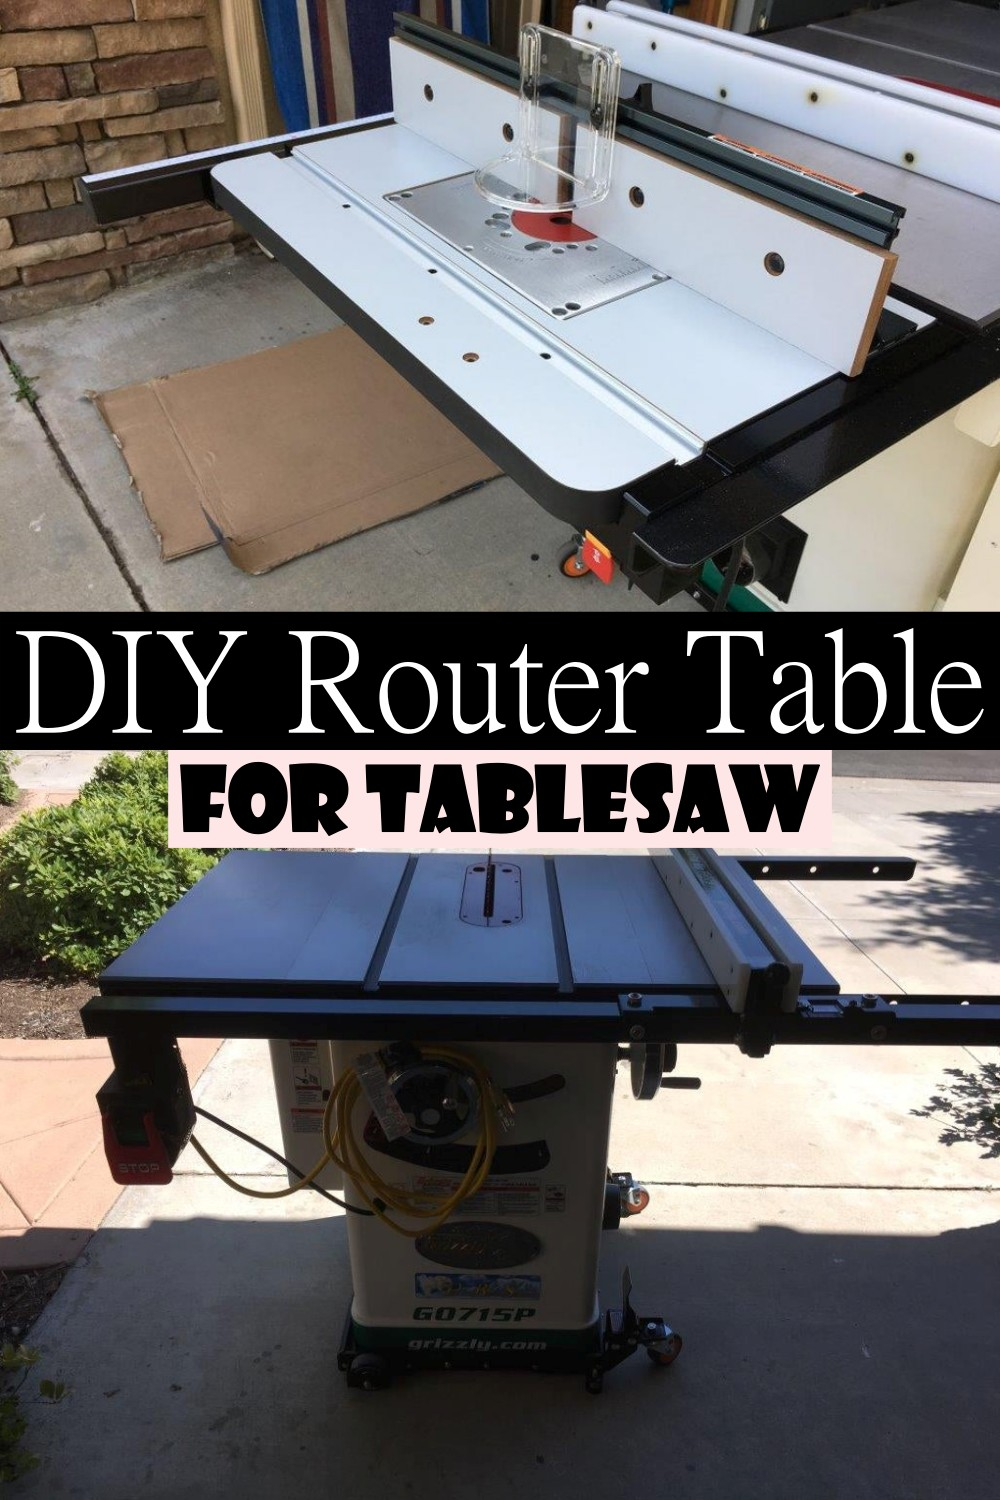 DIY Router Table For Tablesaw